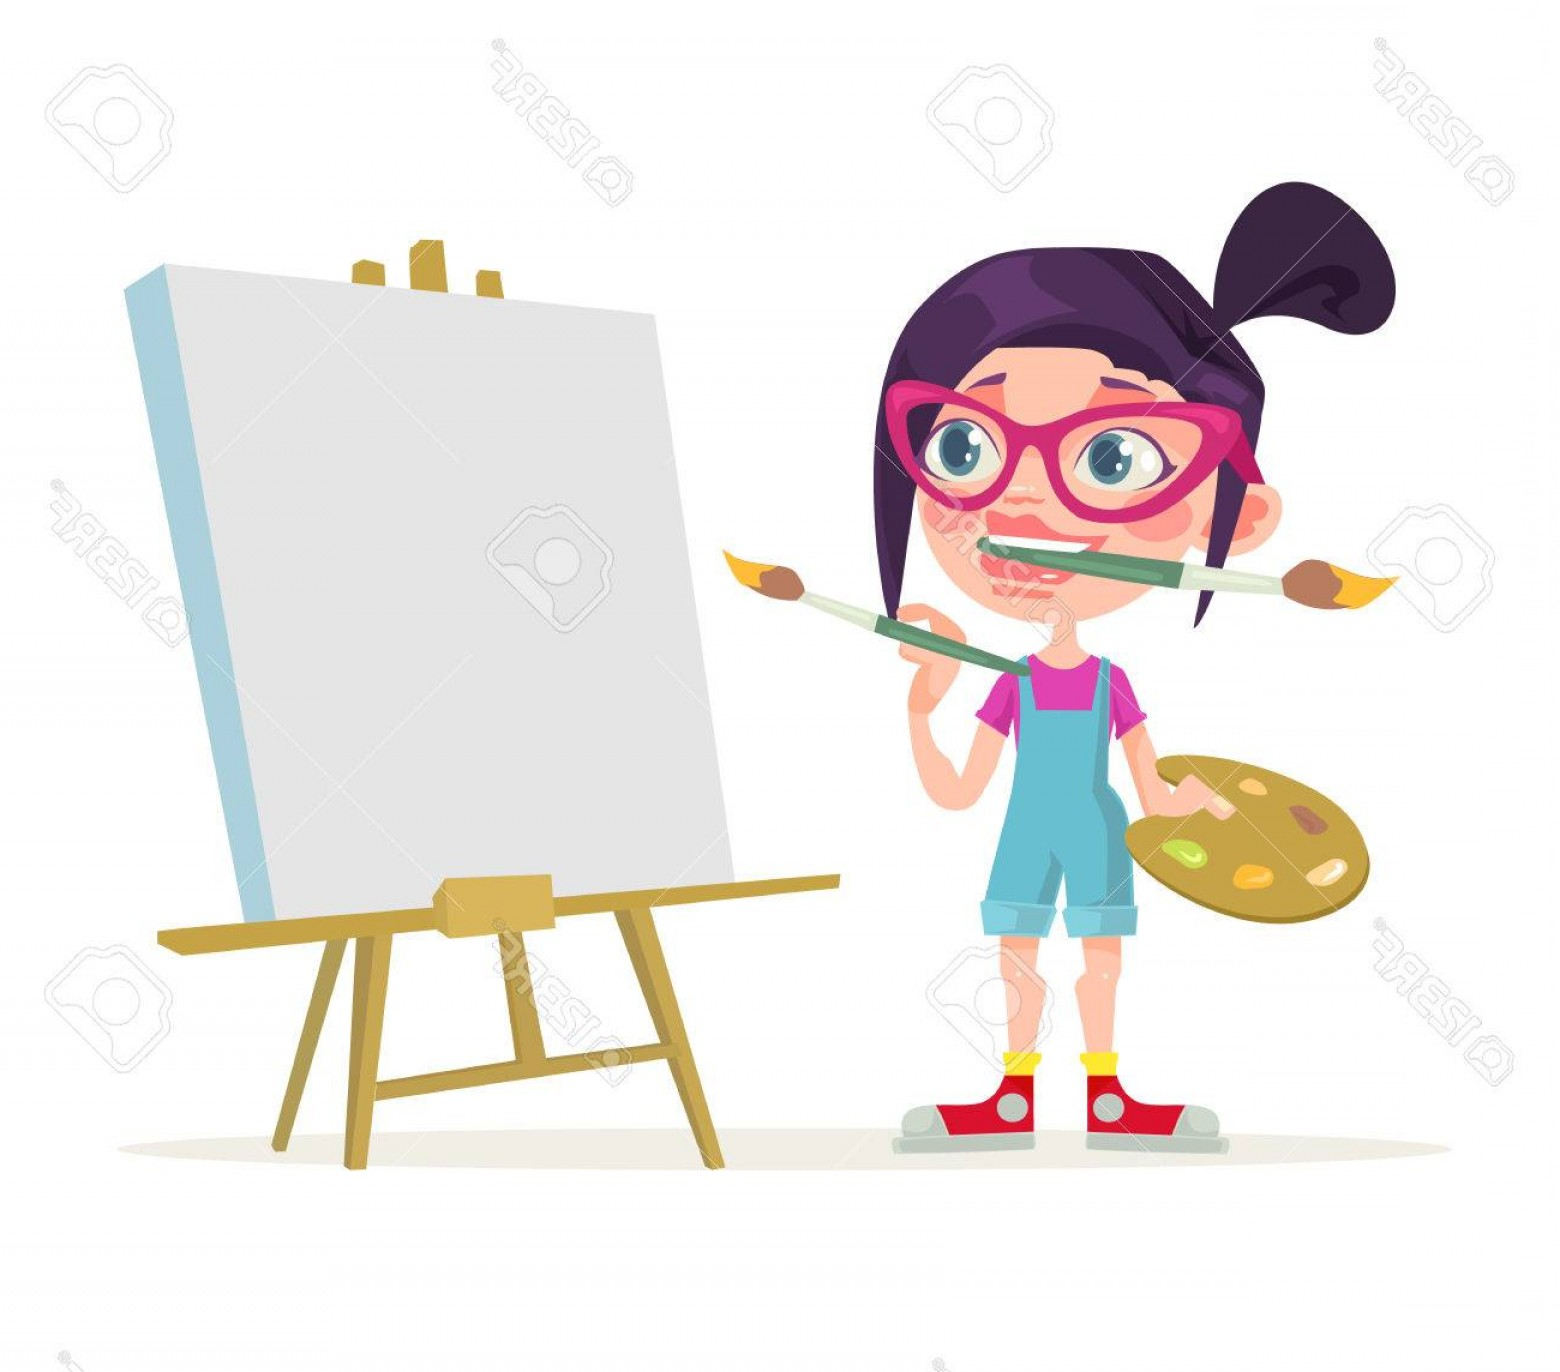 Woman Vector Toon Painter: Photostock Vector Little Girl Artist Character Blank Canvas Vector Flat Cartoon Illustration